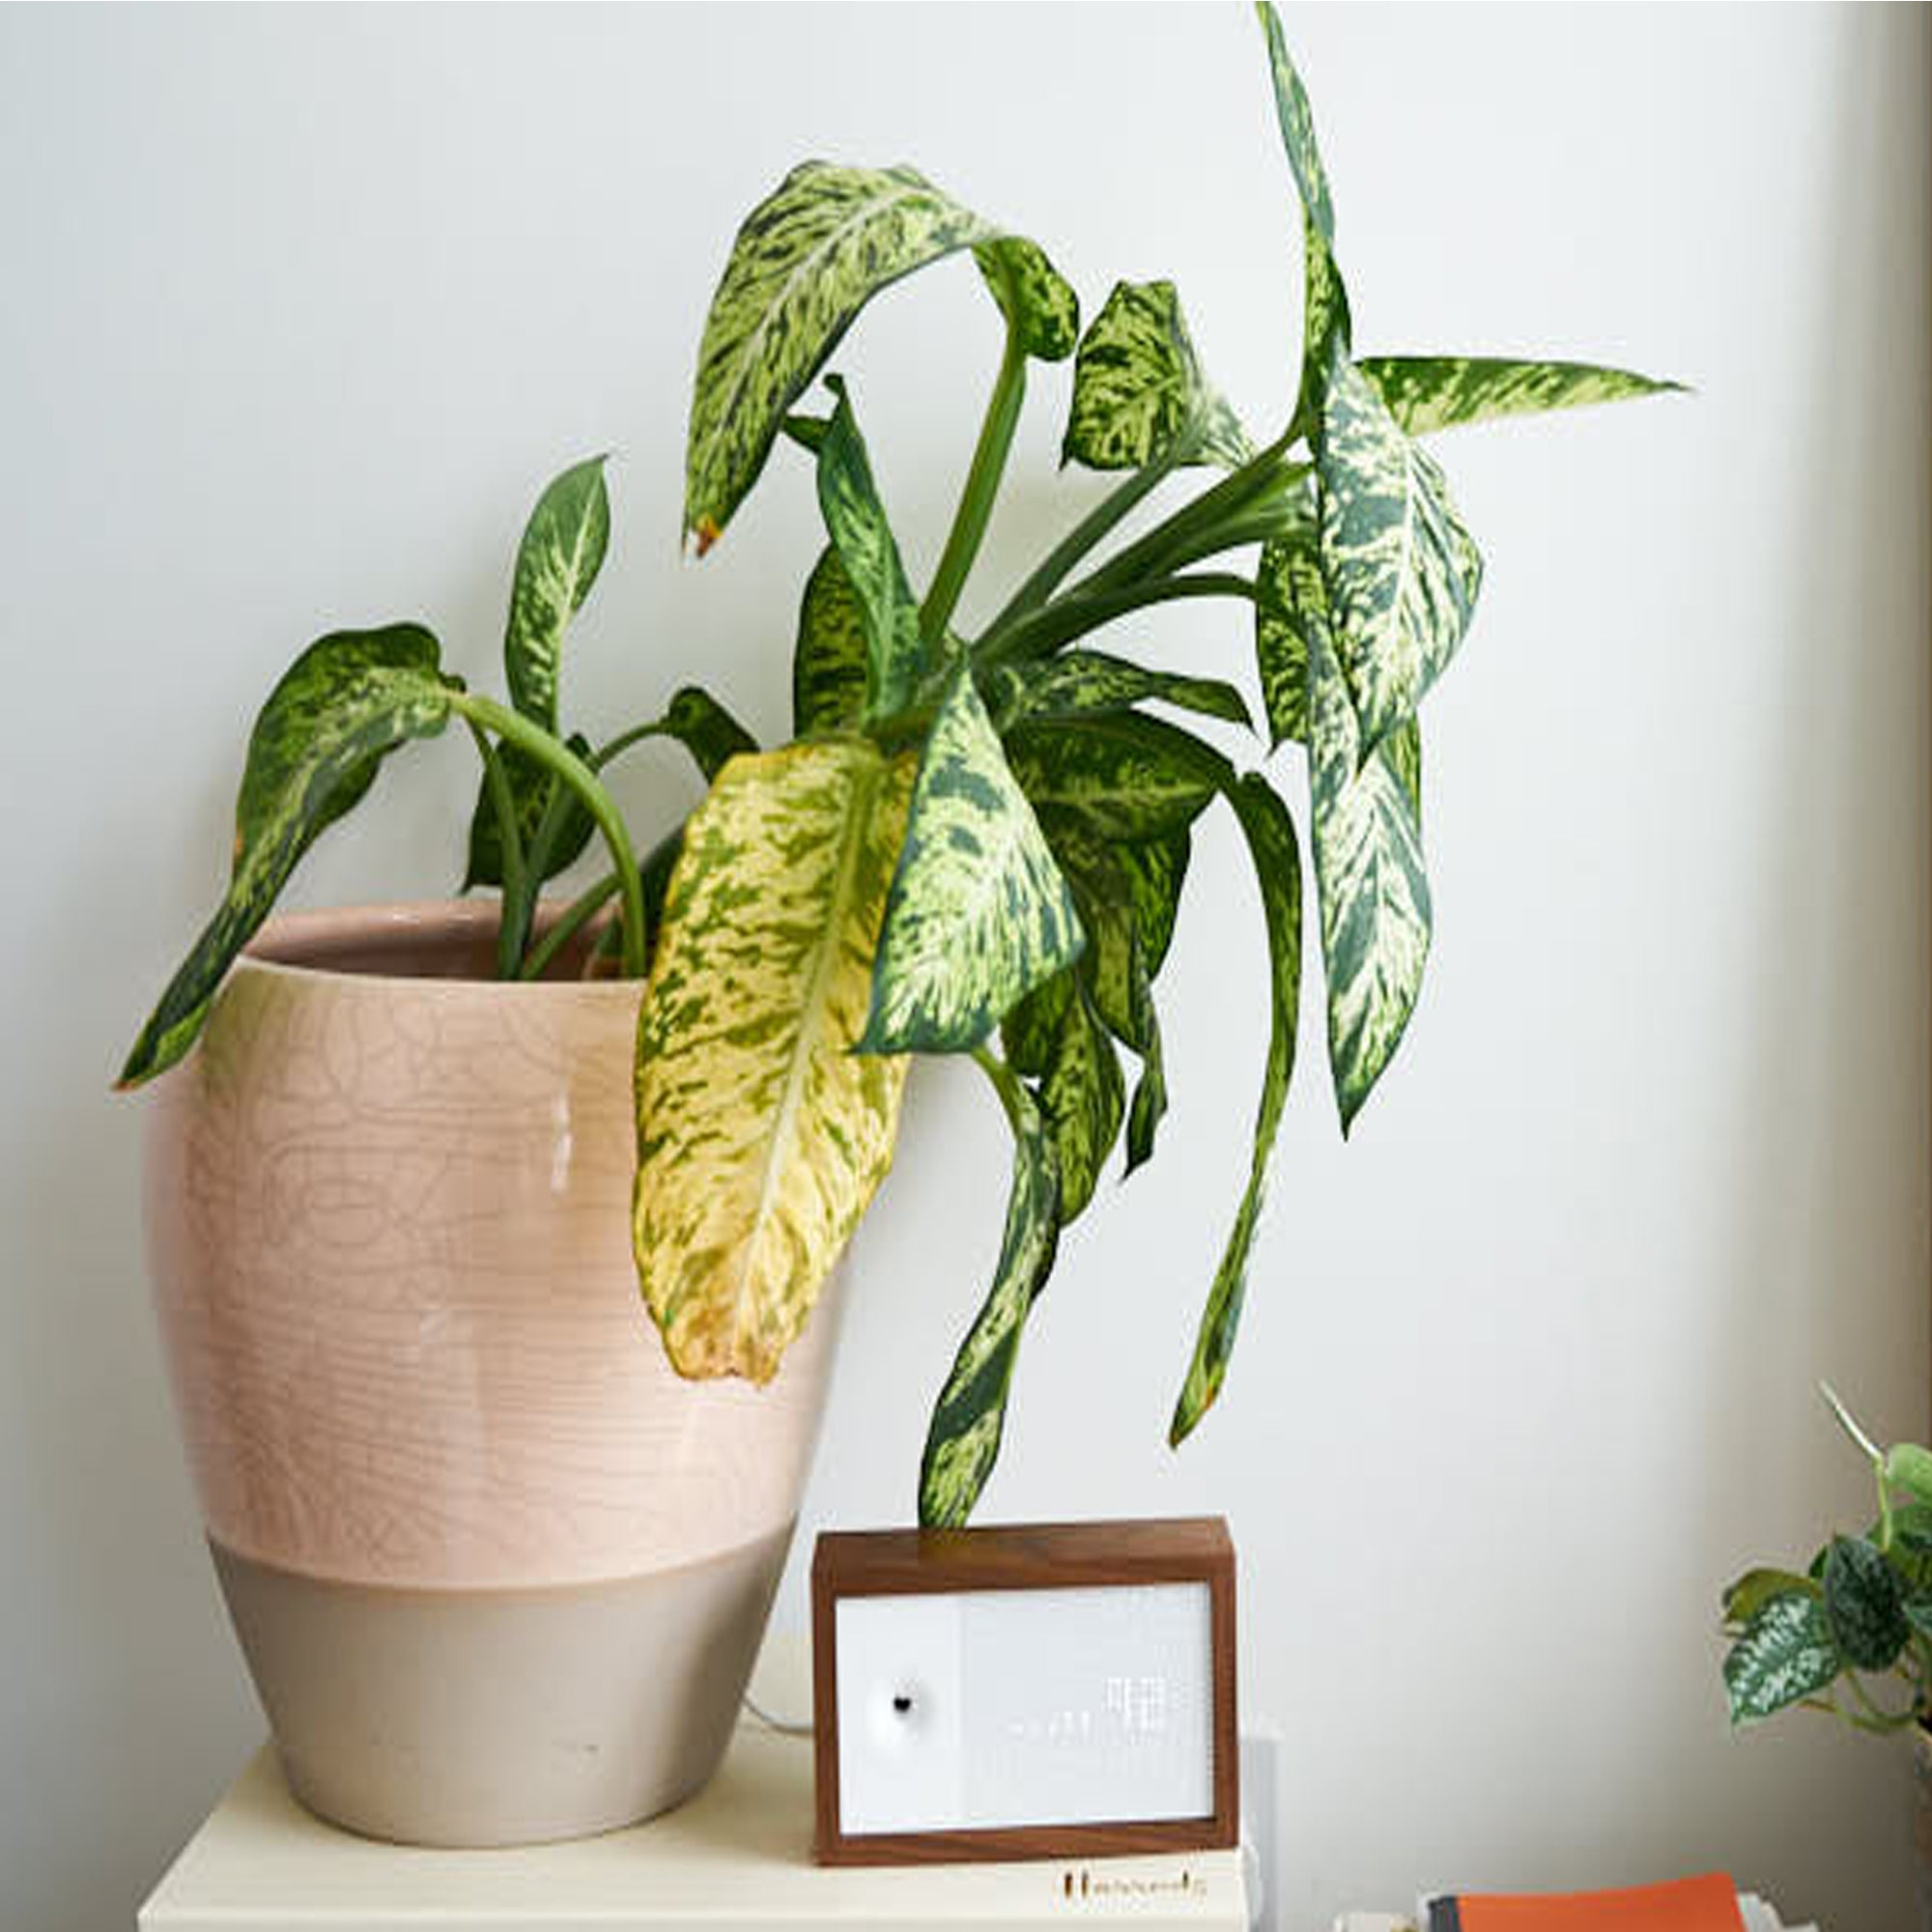 Plant Problems: Signs your plant isn't living their best life